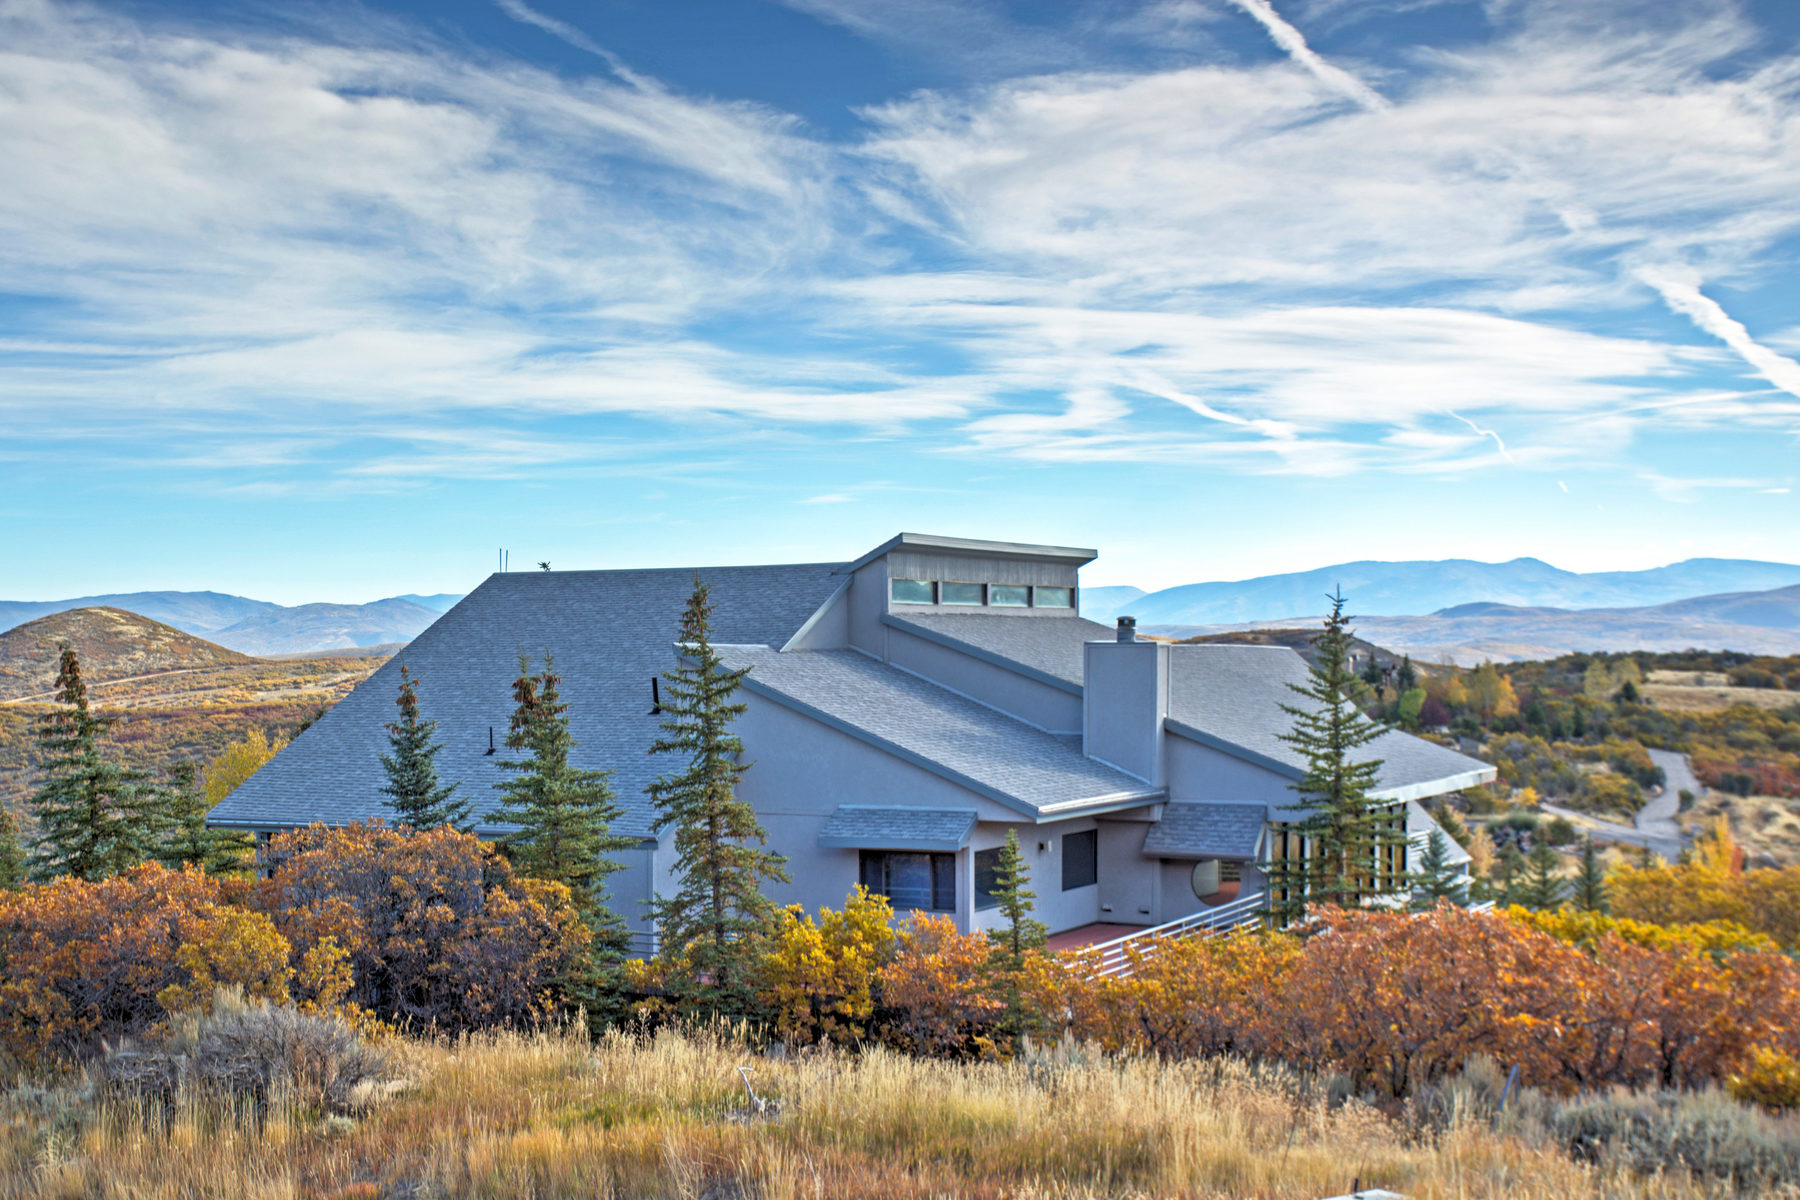 Nhà ở một gia đình vì Bán tại This Mountaintop Gem is the Perfect Personal or Corporate Retreat 325 Mountain Top Dr Park City, Utah, 84060 Hoa Kỳ